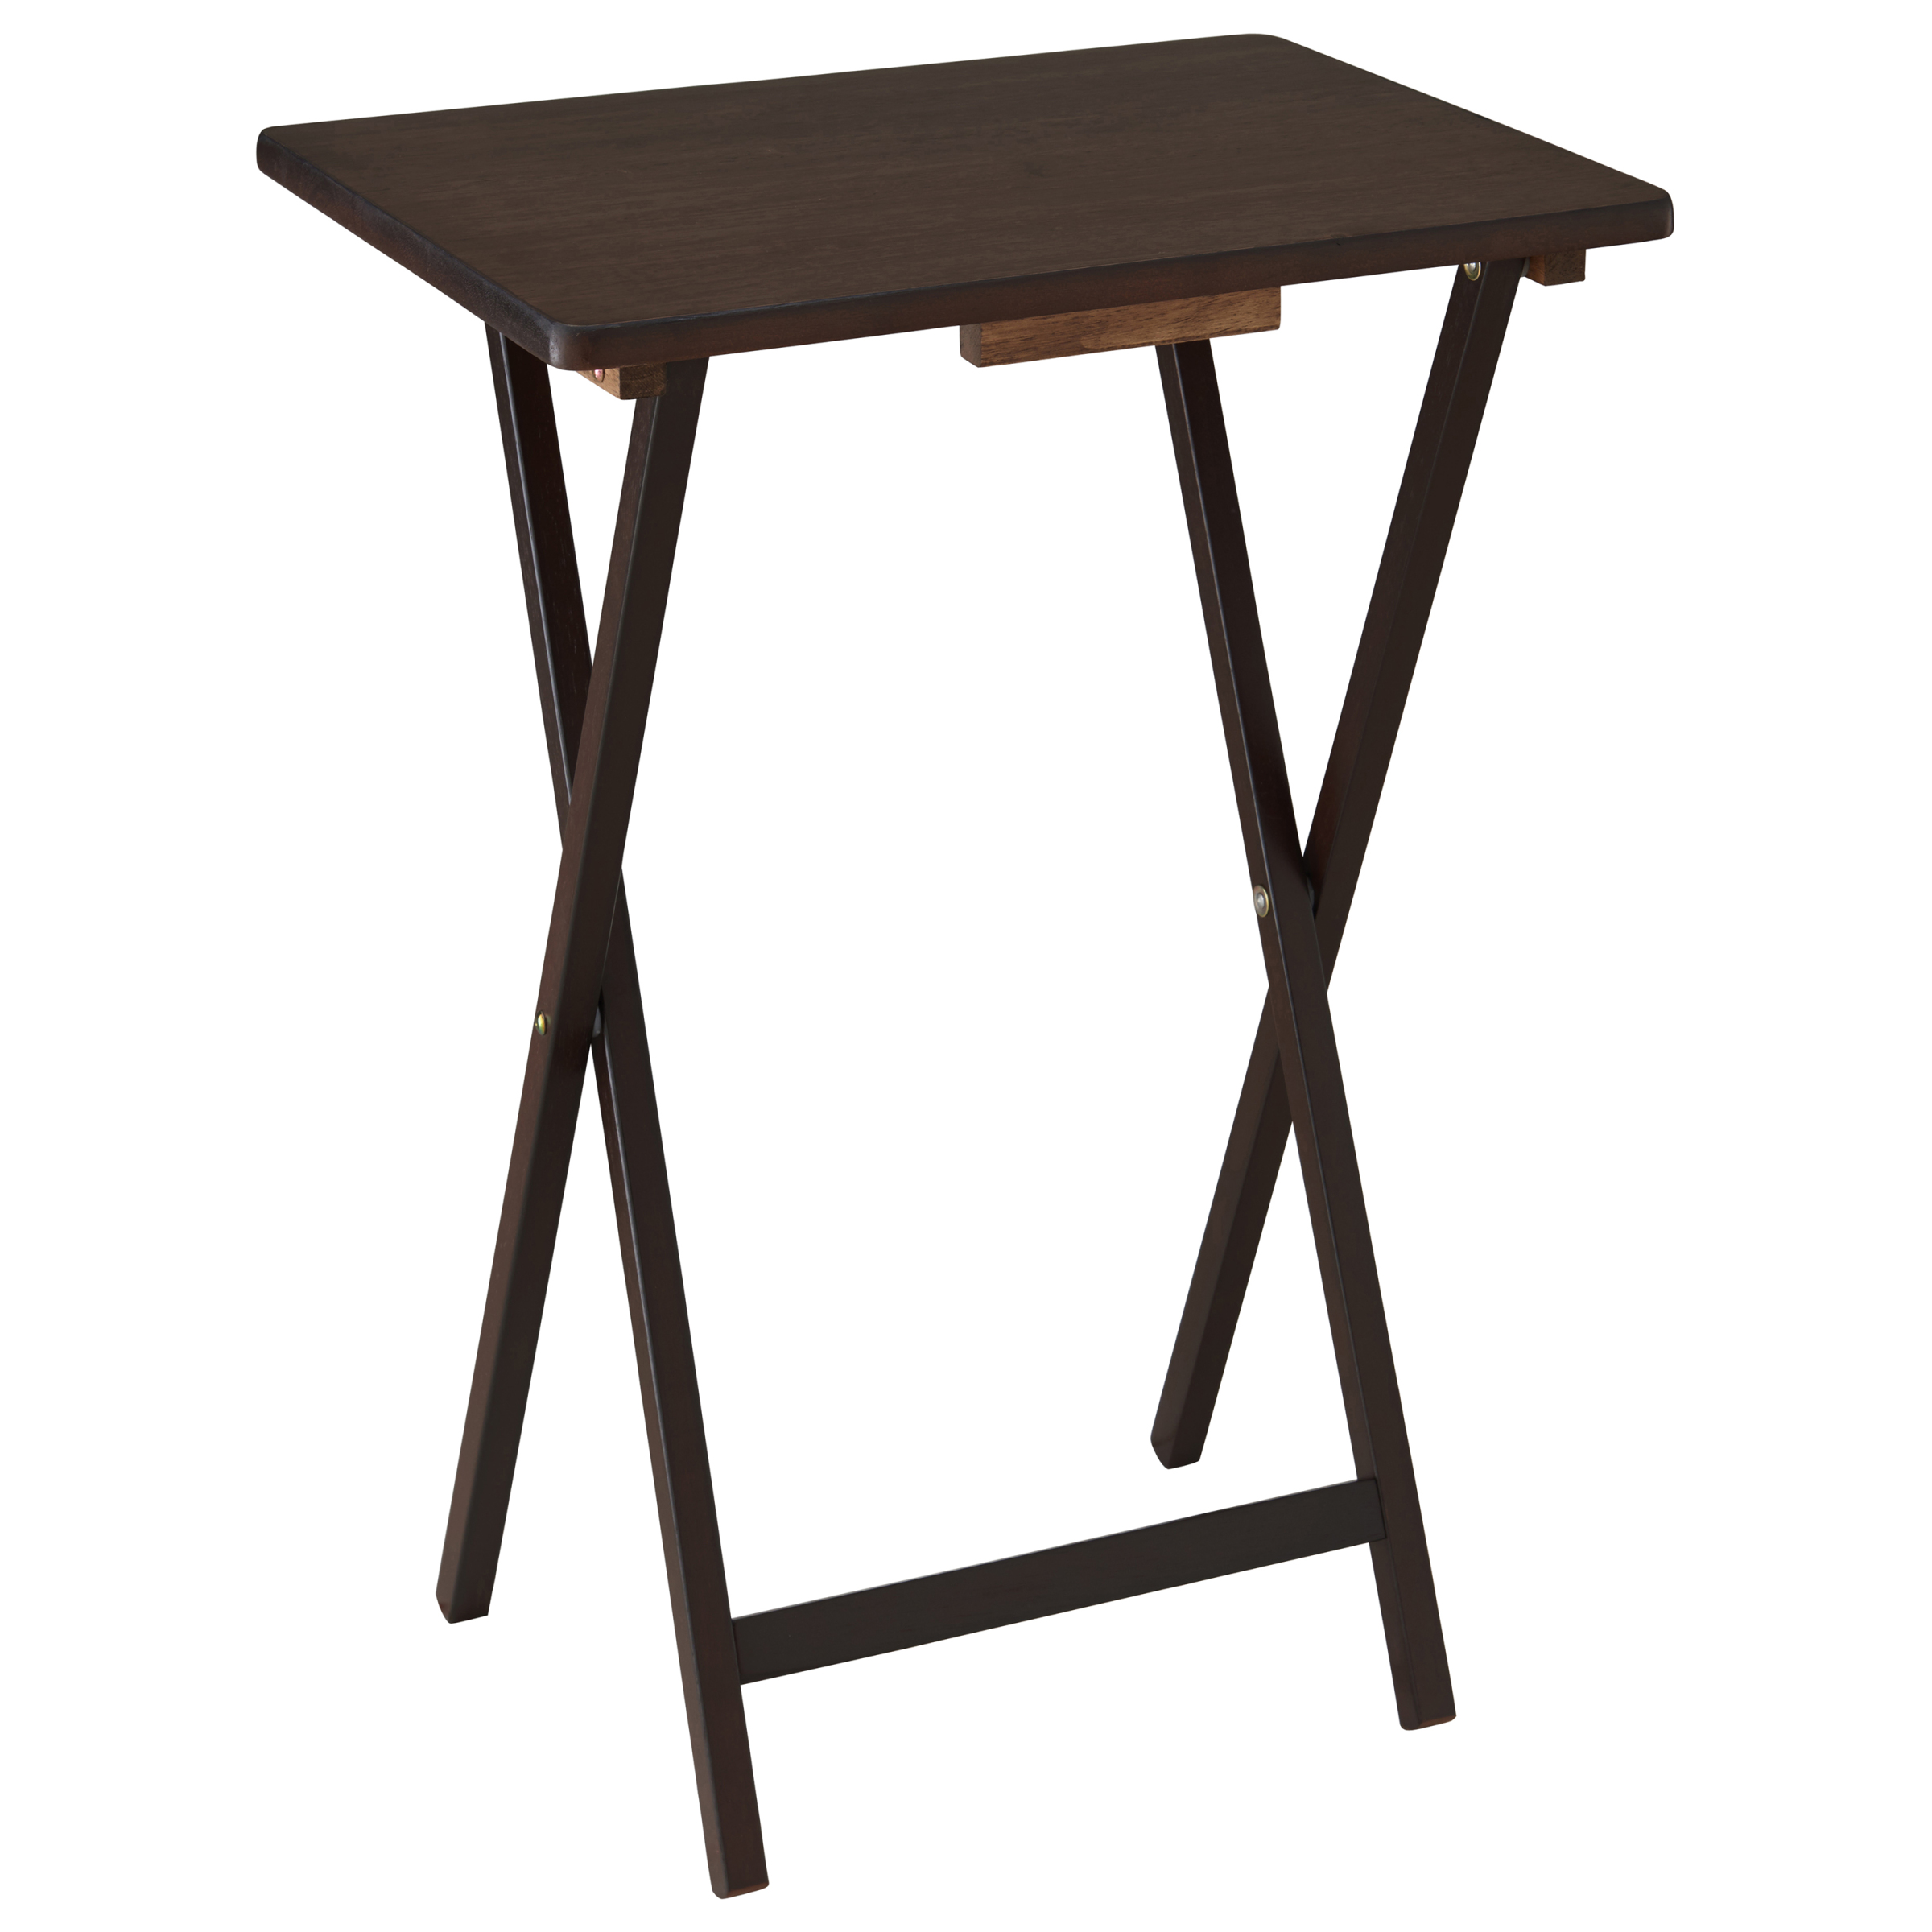 Mainstays 5-Piece Folding Tray Table Set Walnut  sc 1 st  Walmart & Winsome Wood Isabelle 6-Piece Snack Tray Set with Removable Serving ...